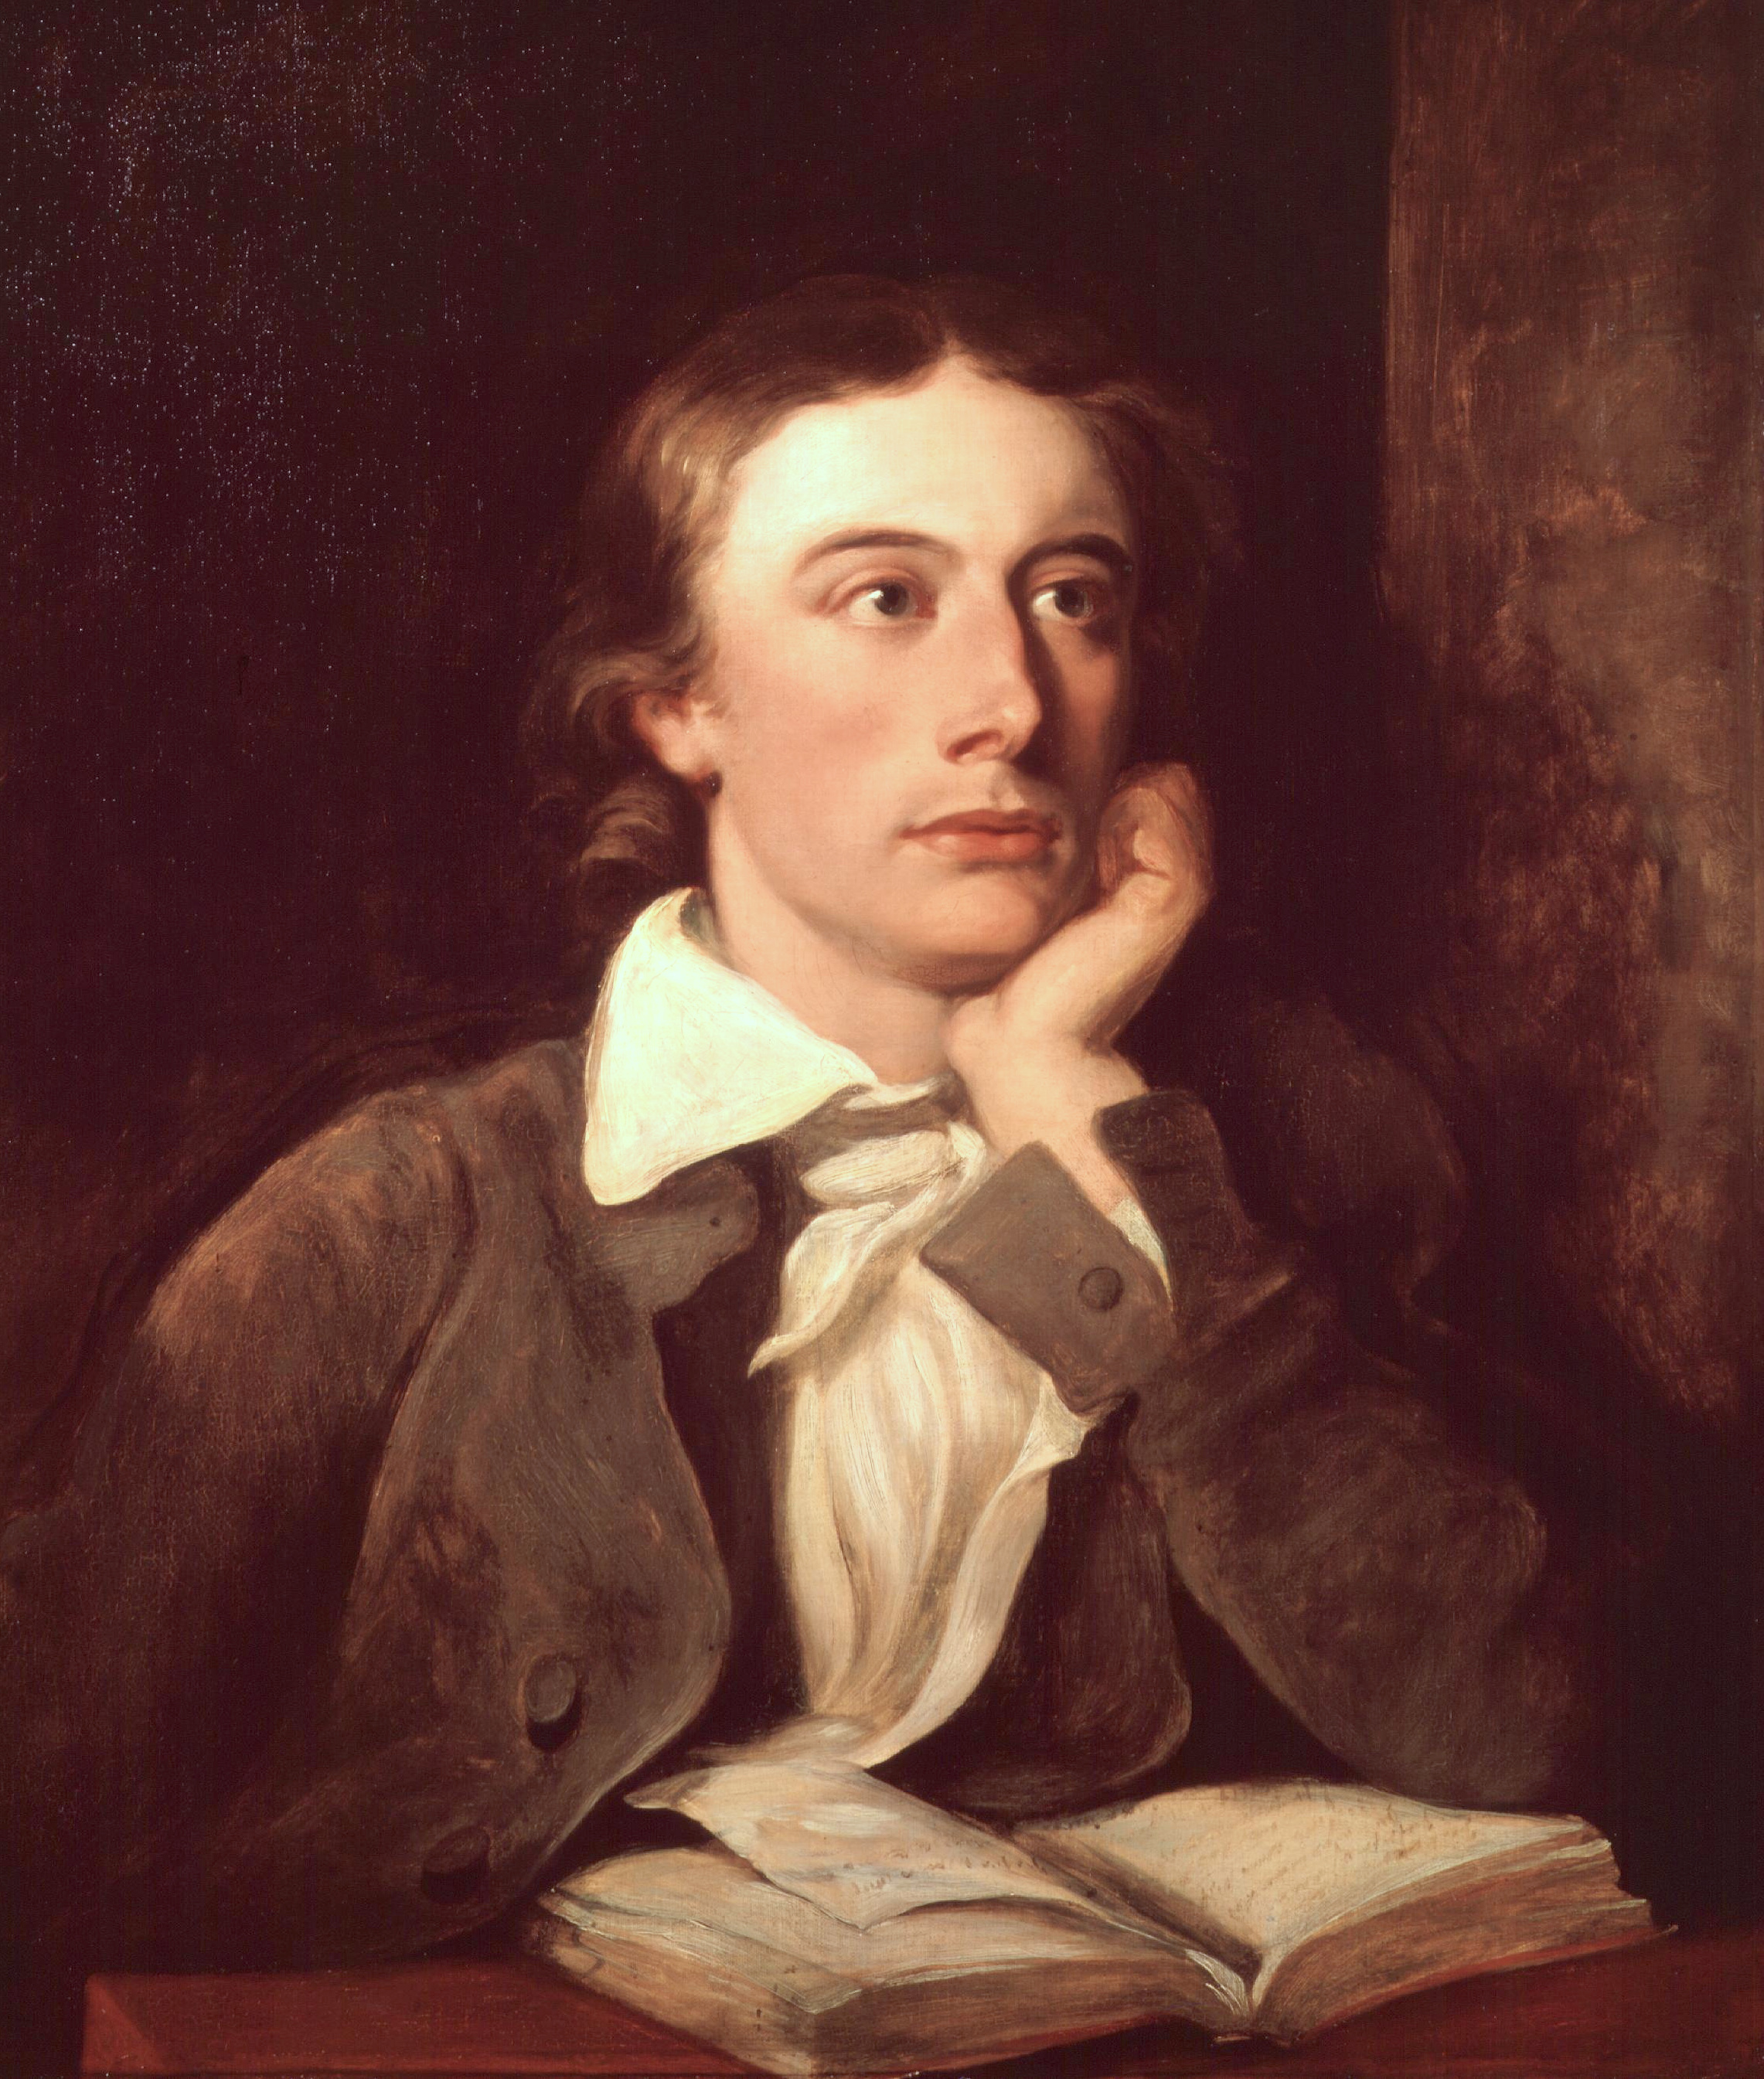 John Keats, by William Hilton (died 1839). See...